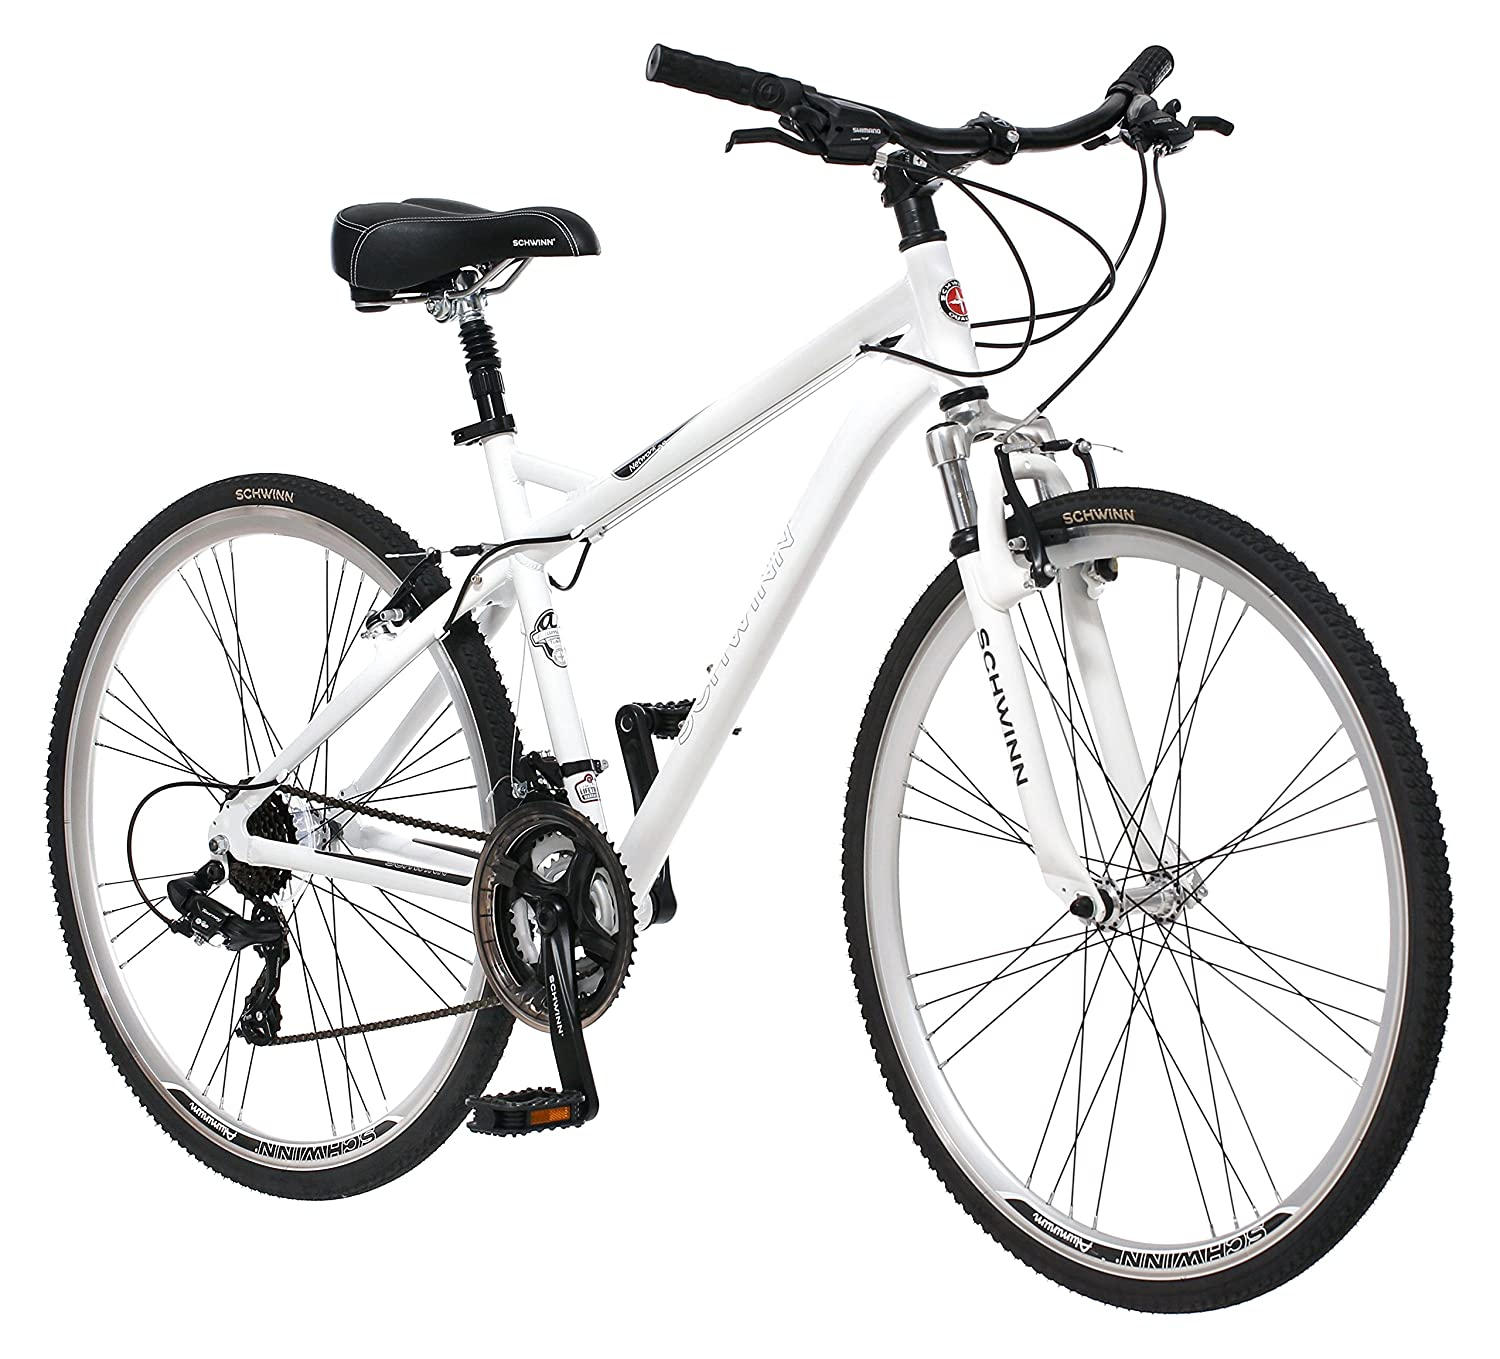 並行輸入 Schwinn Men's Network 3.0 700C Hybrid Bicycle, White, 18-Inch B00AWNHYWW